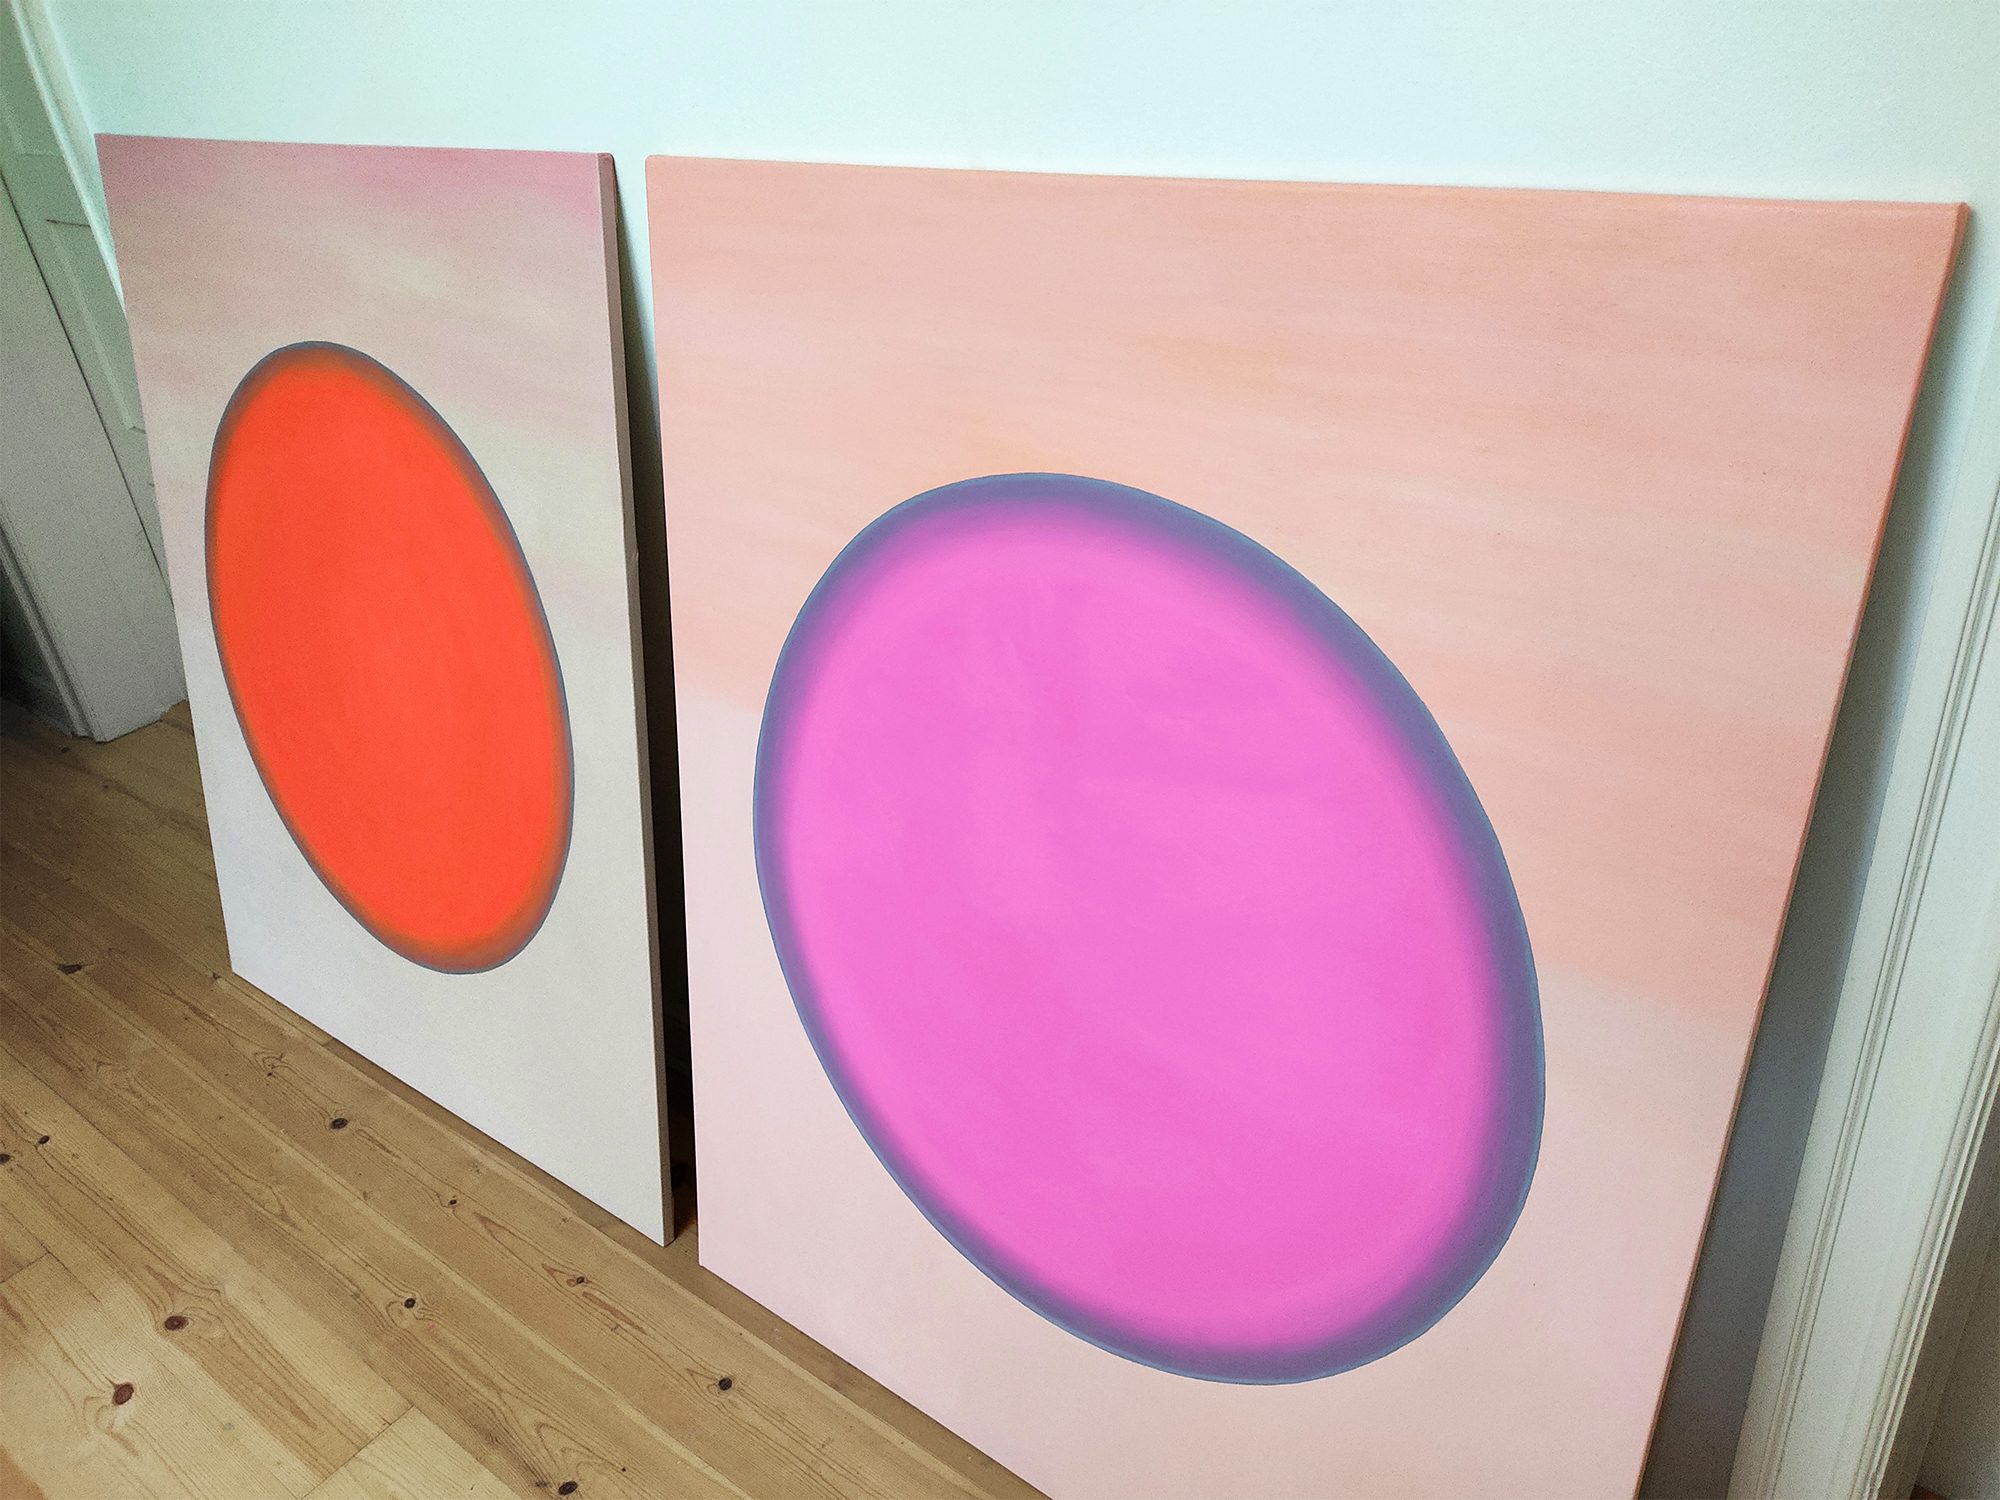 paintings, aesthetic, colorful, graphical, minimalistic, moods, nature, science, technology, grey, orange, pastel, pink, acrylic, cotton-canvas, abstract-forms, beautiful, contemporary-art, copenhagen, danish, decorative, design, fantasy, interior-design, modern, modern-art, outer-space, pretty, scandinavien, shapes, symbolic, symmetry, Buy original high quality art. Paintings, drawings, limited edition prints & posters by talented artists.